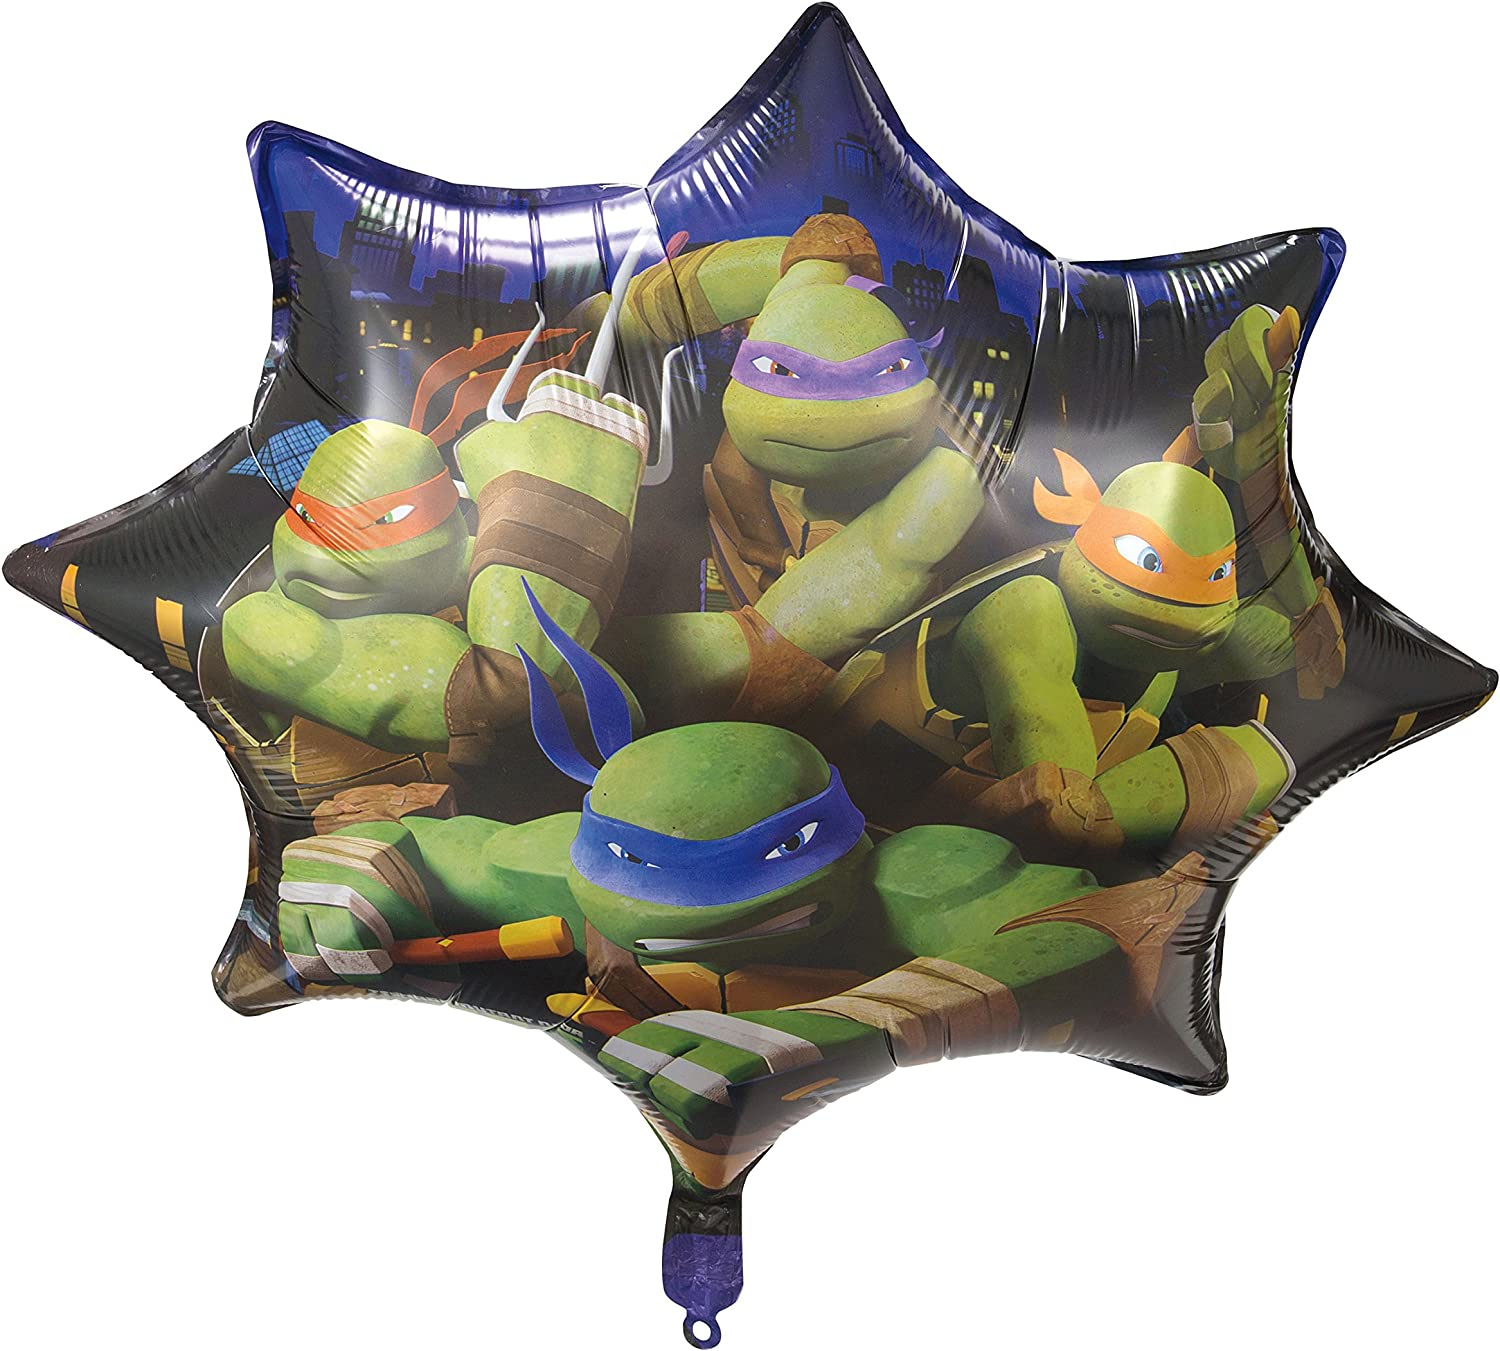 Amazon.com: Globo de helio de Teenage Mutant Ninja Turtles ...